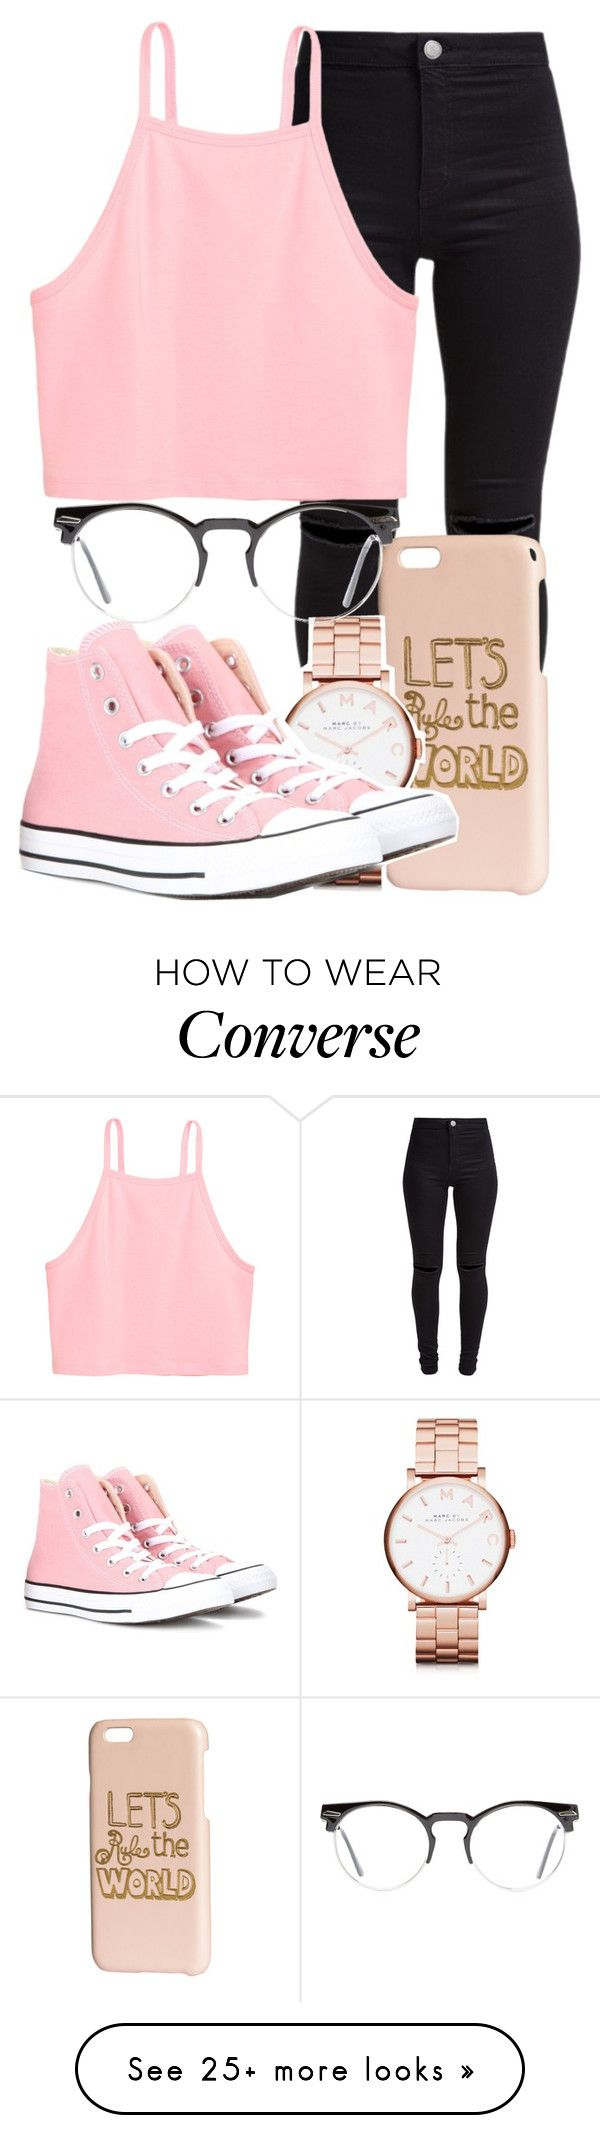 """Legend"" by mallorimae on Polyvore featuring New Look, H&M, Marc by Marc Jacobs, Converse and Spitfire"